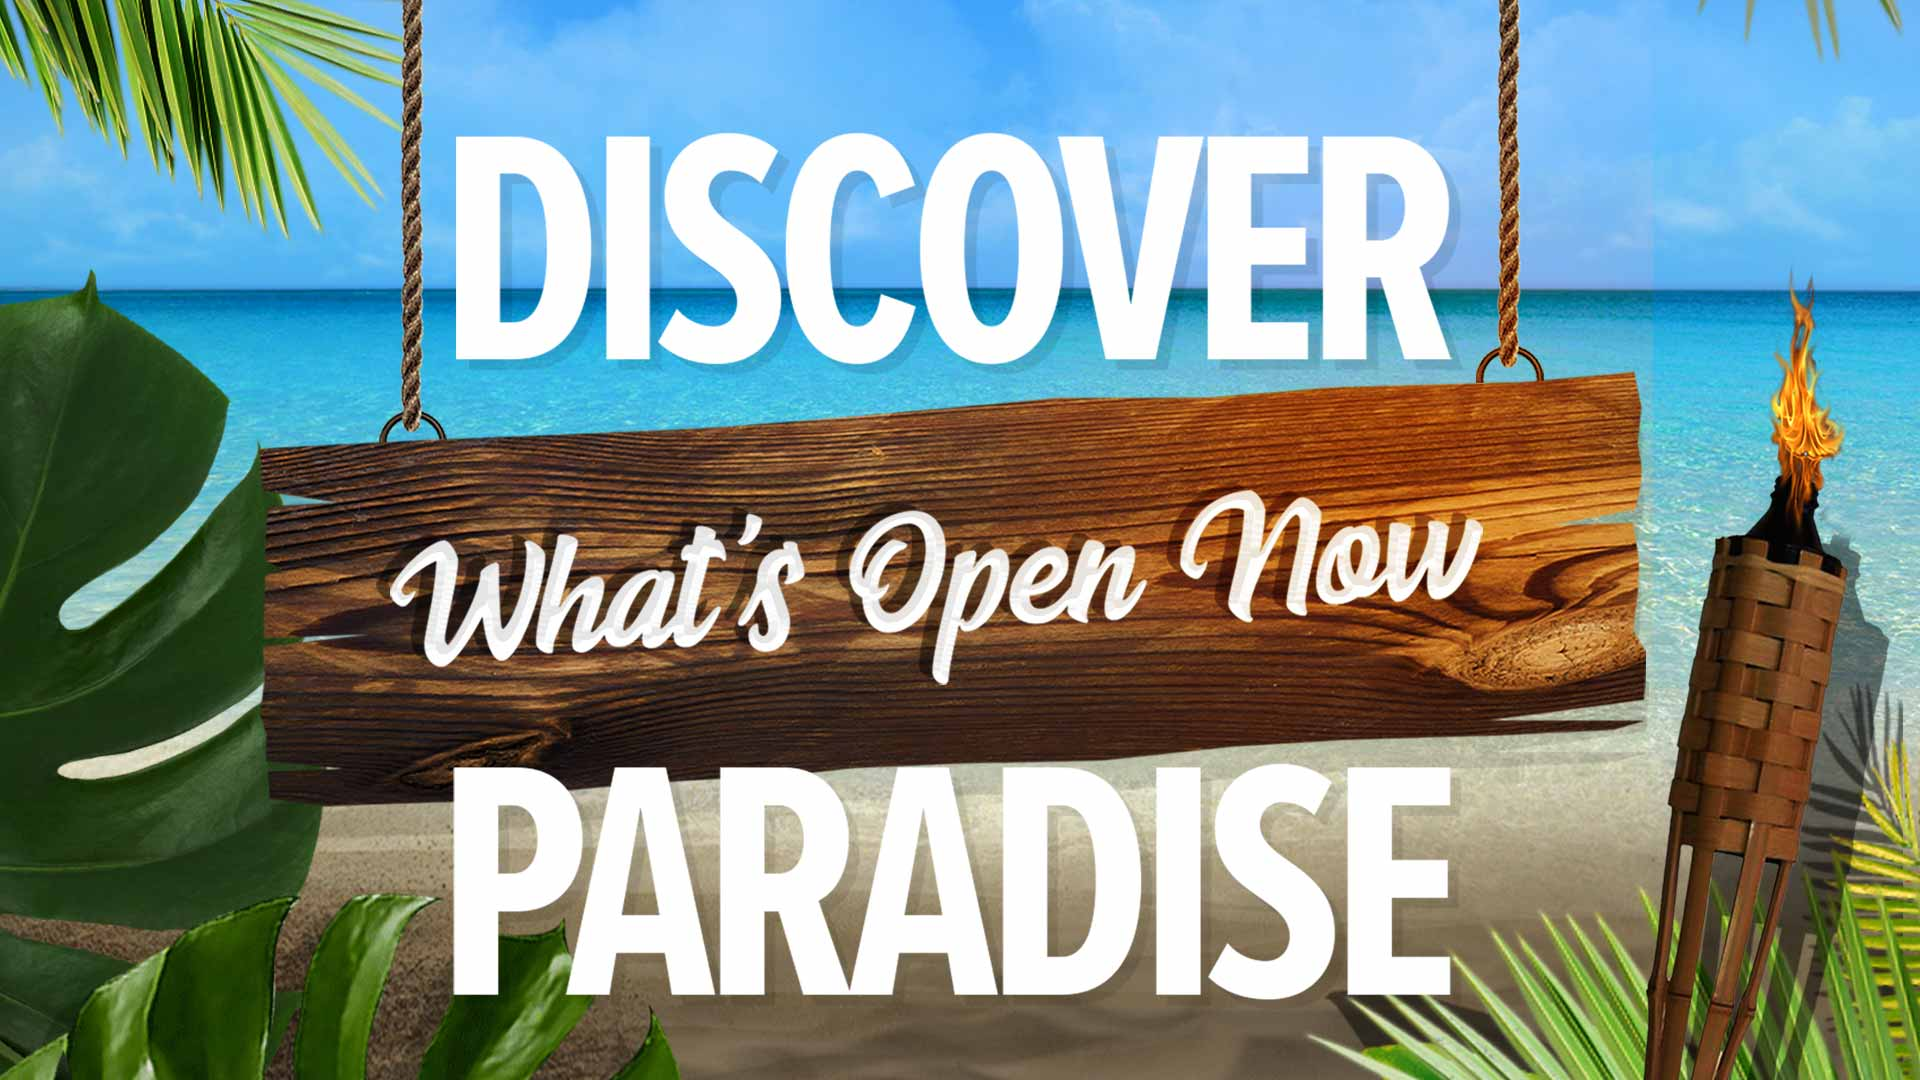 discover whats open now in paradise